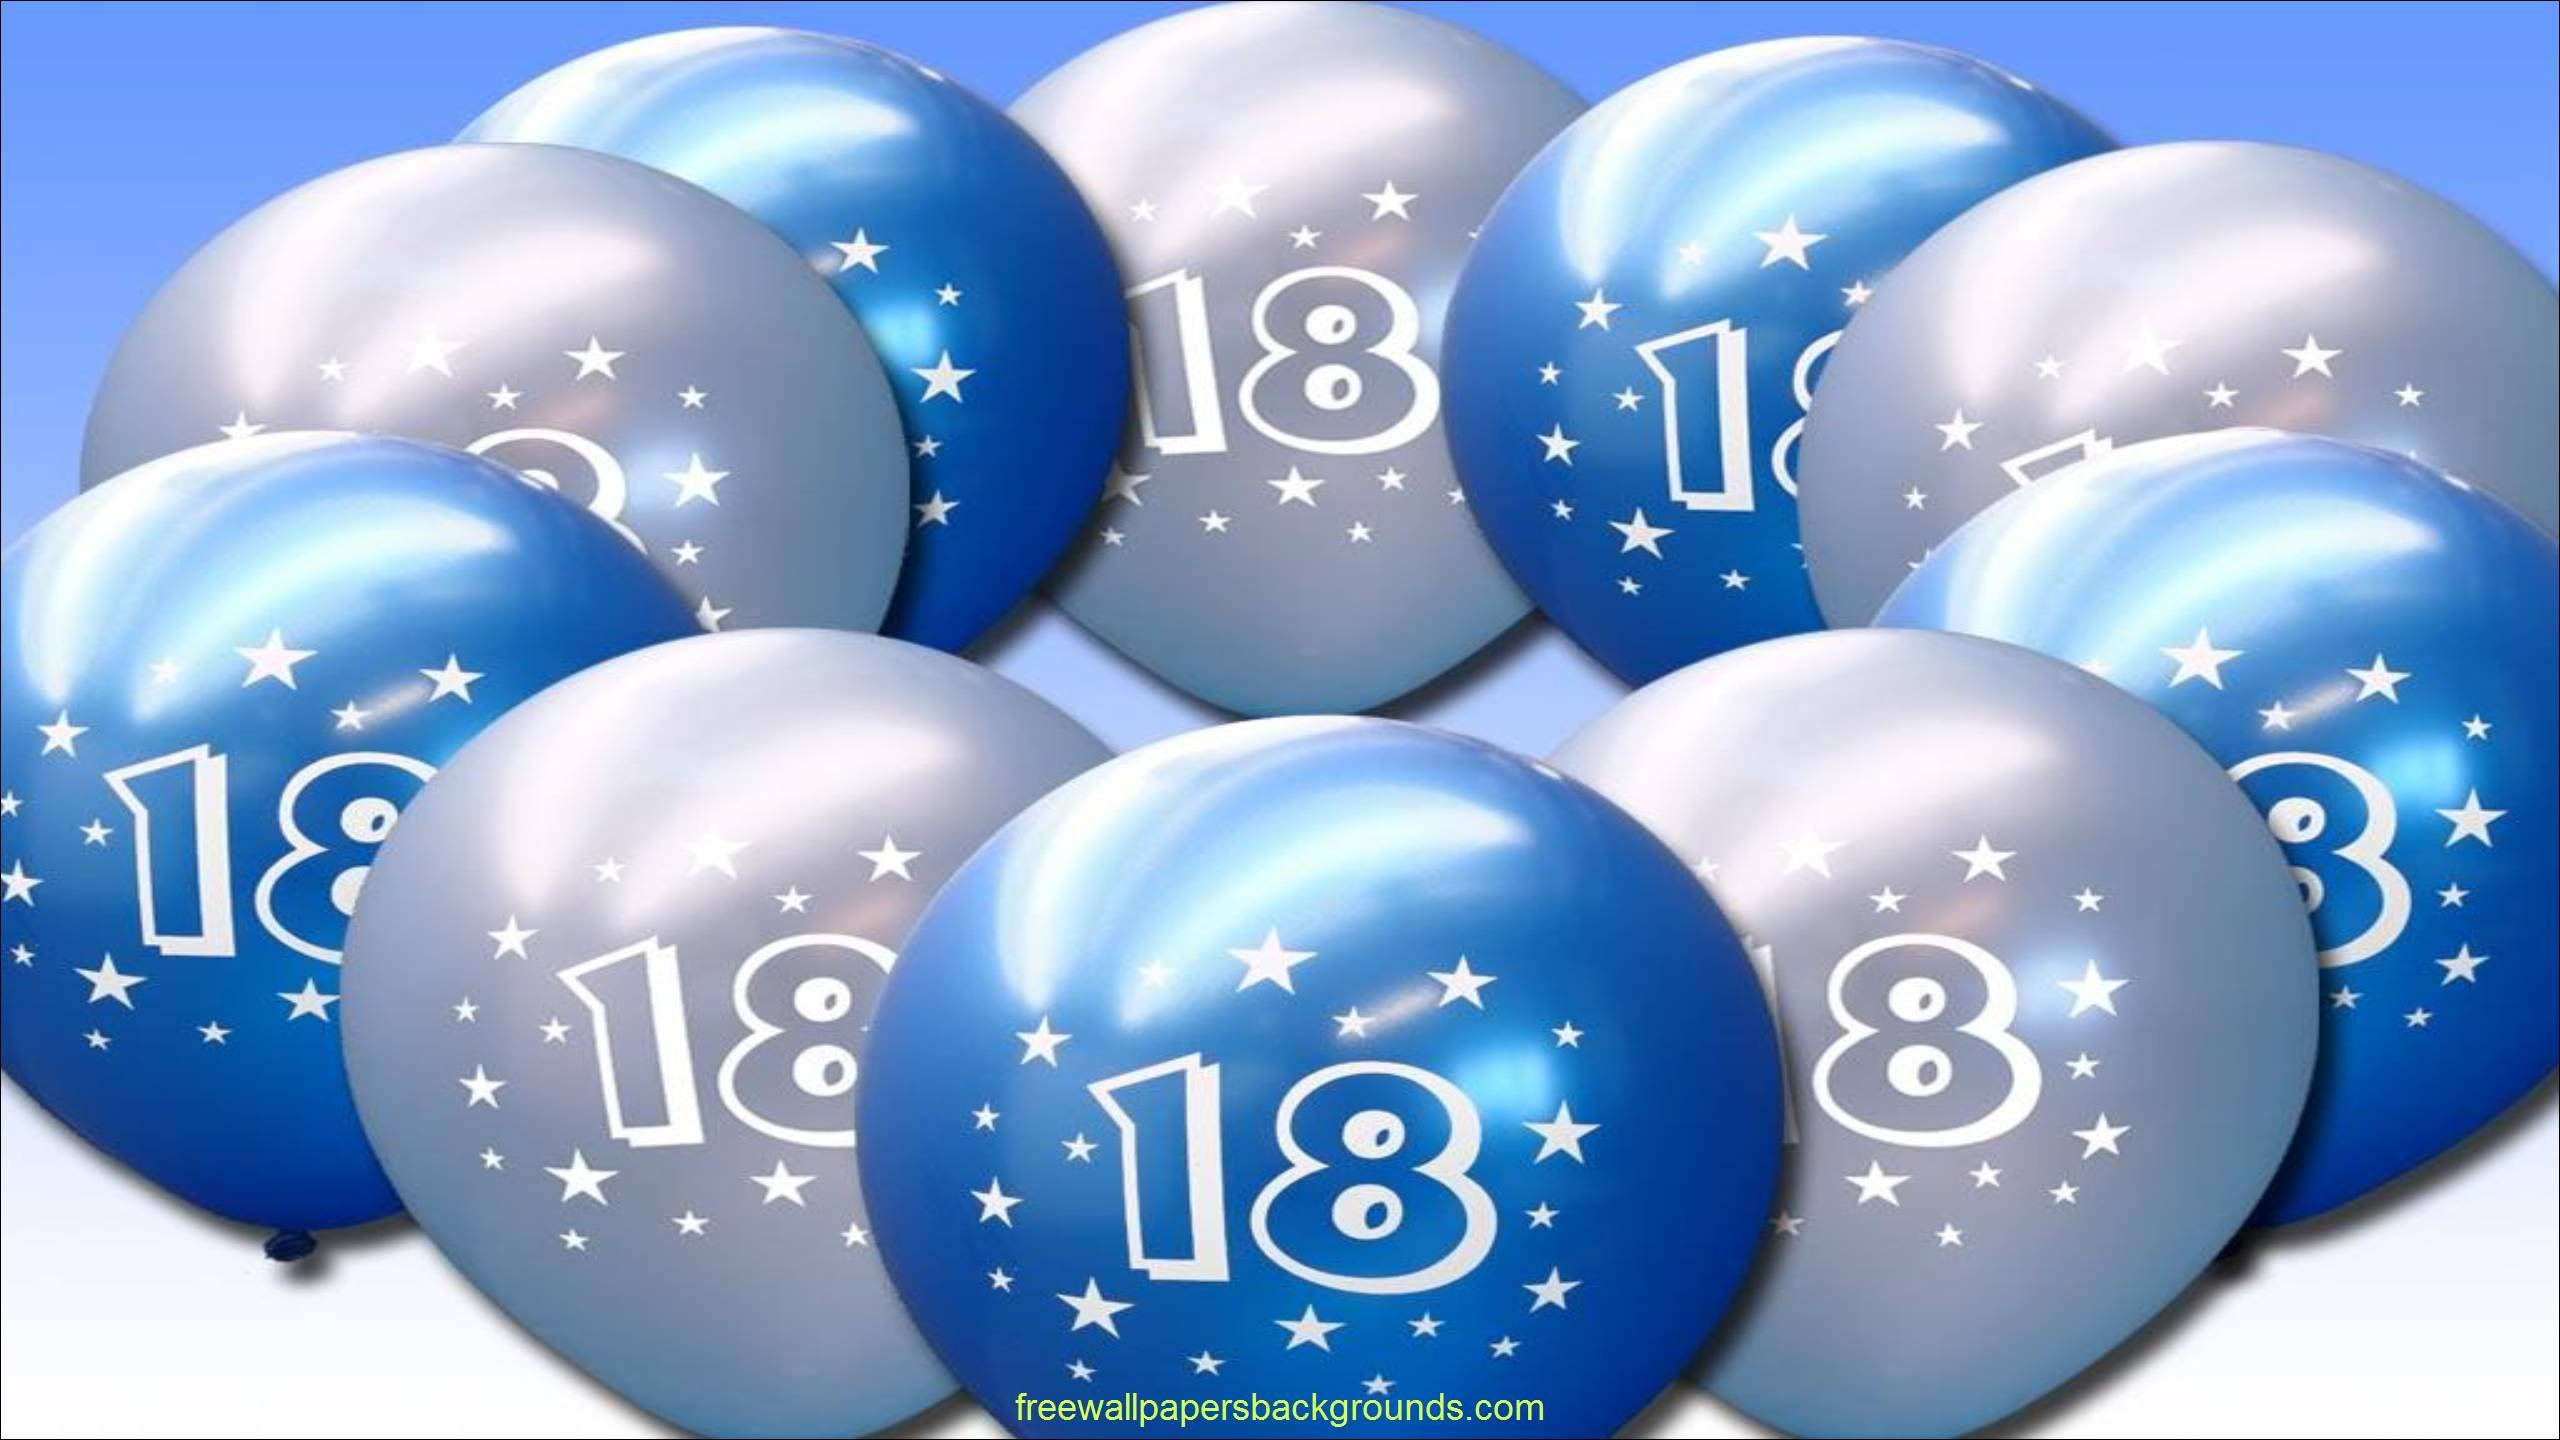 18th birthday wallpaper ; birthday-wallpaper-frames-wallpapers-balloons-stylish-perfect-celebrating-images